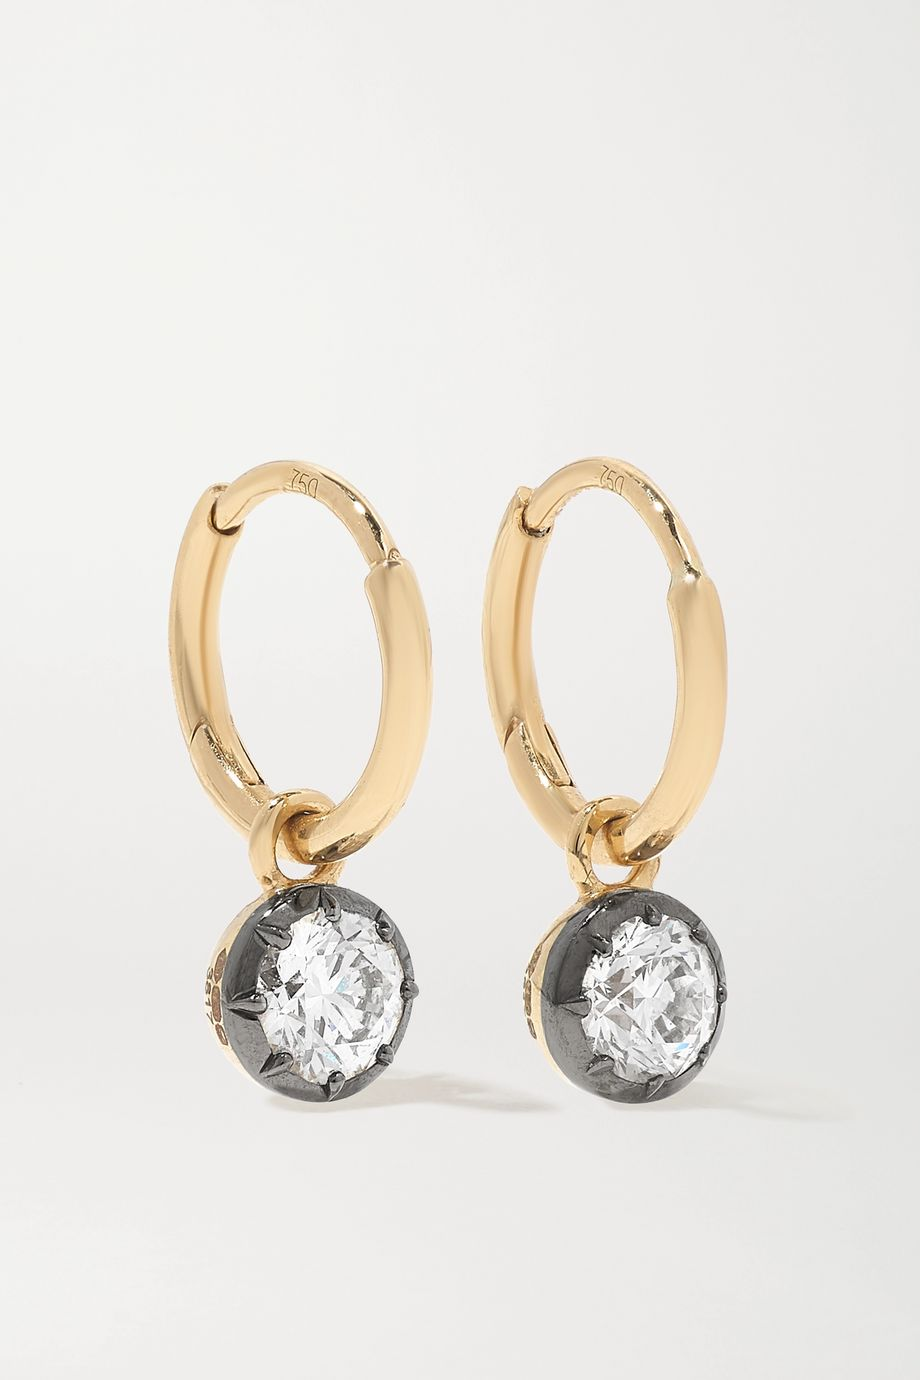 Jessica McCormack Gypset 18-karat yellow and blackened white gold diamond hoop earrings